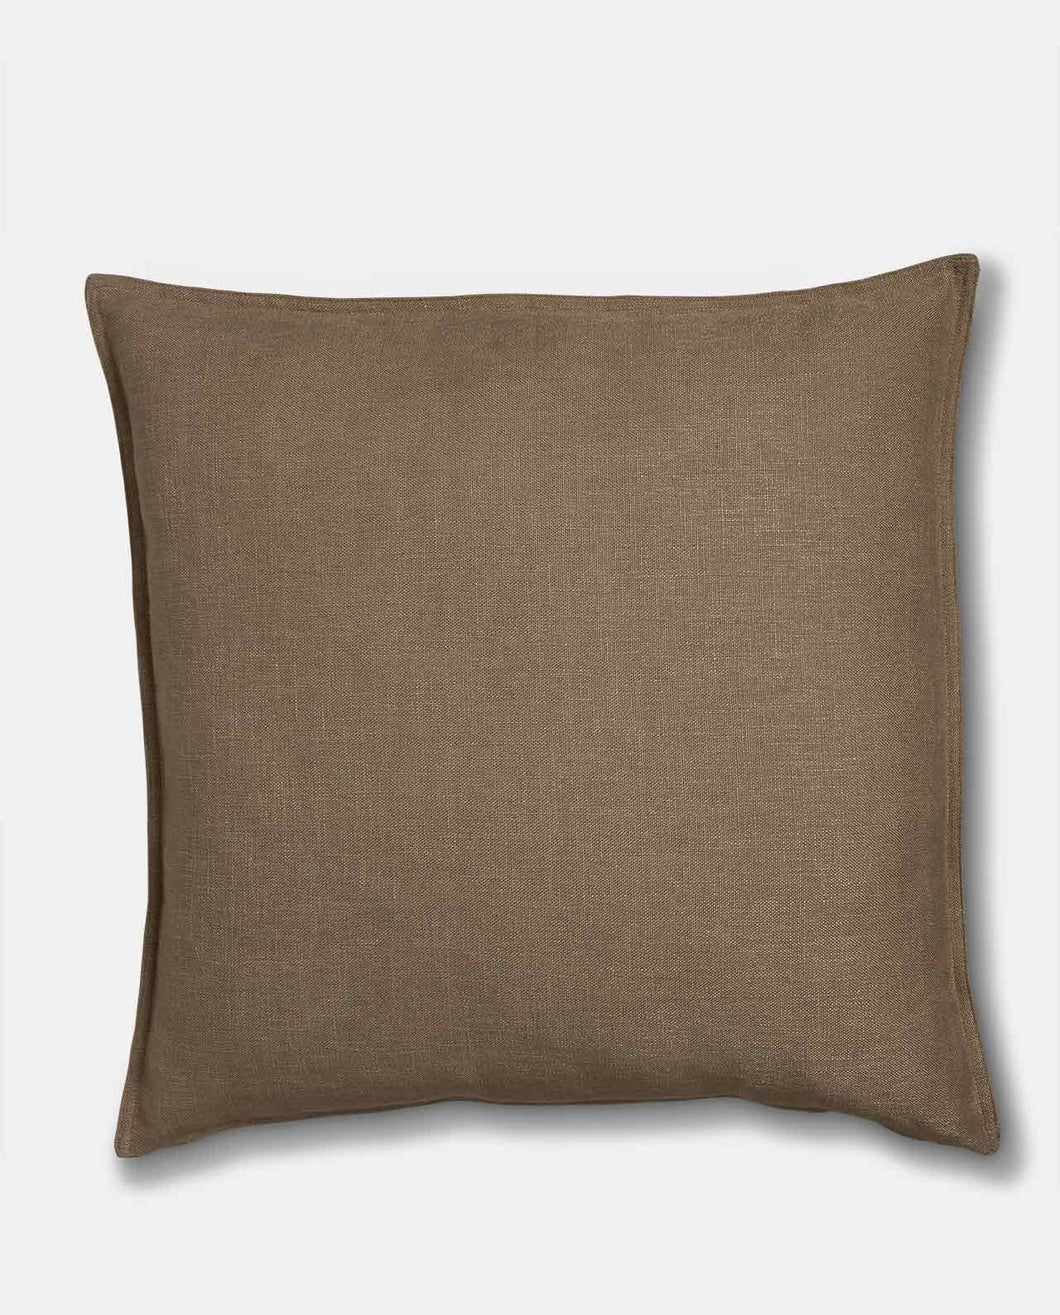 Large Oatmeal Scatter Cushion Cover